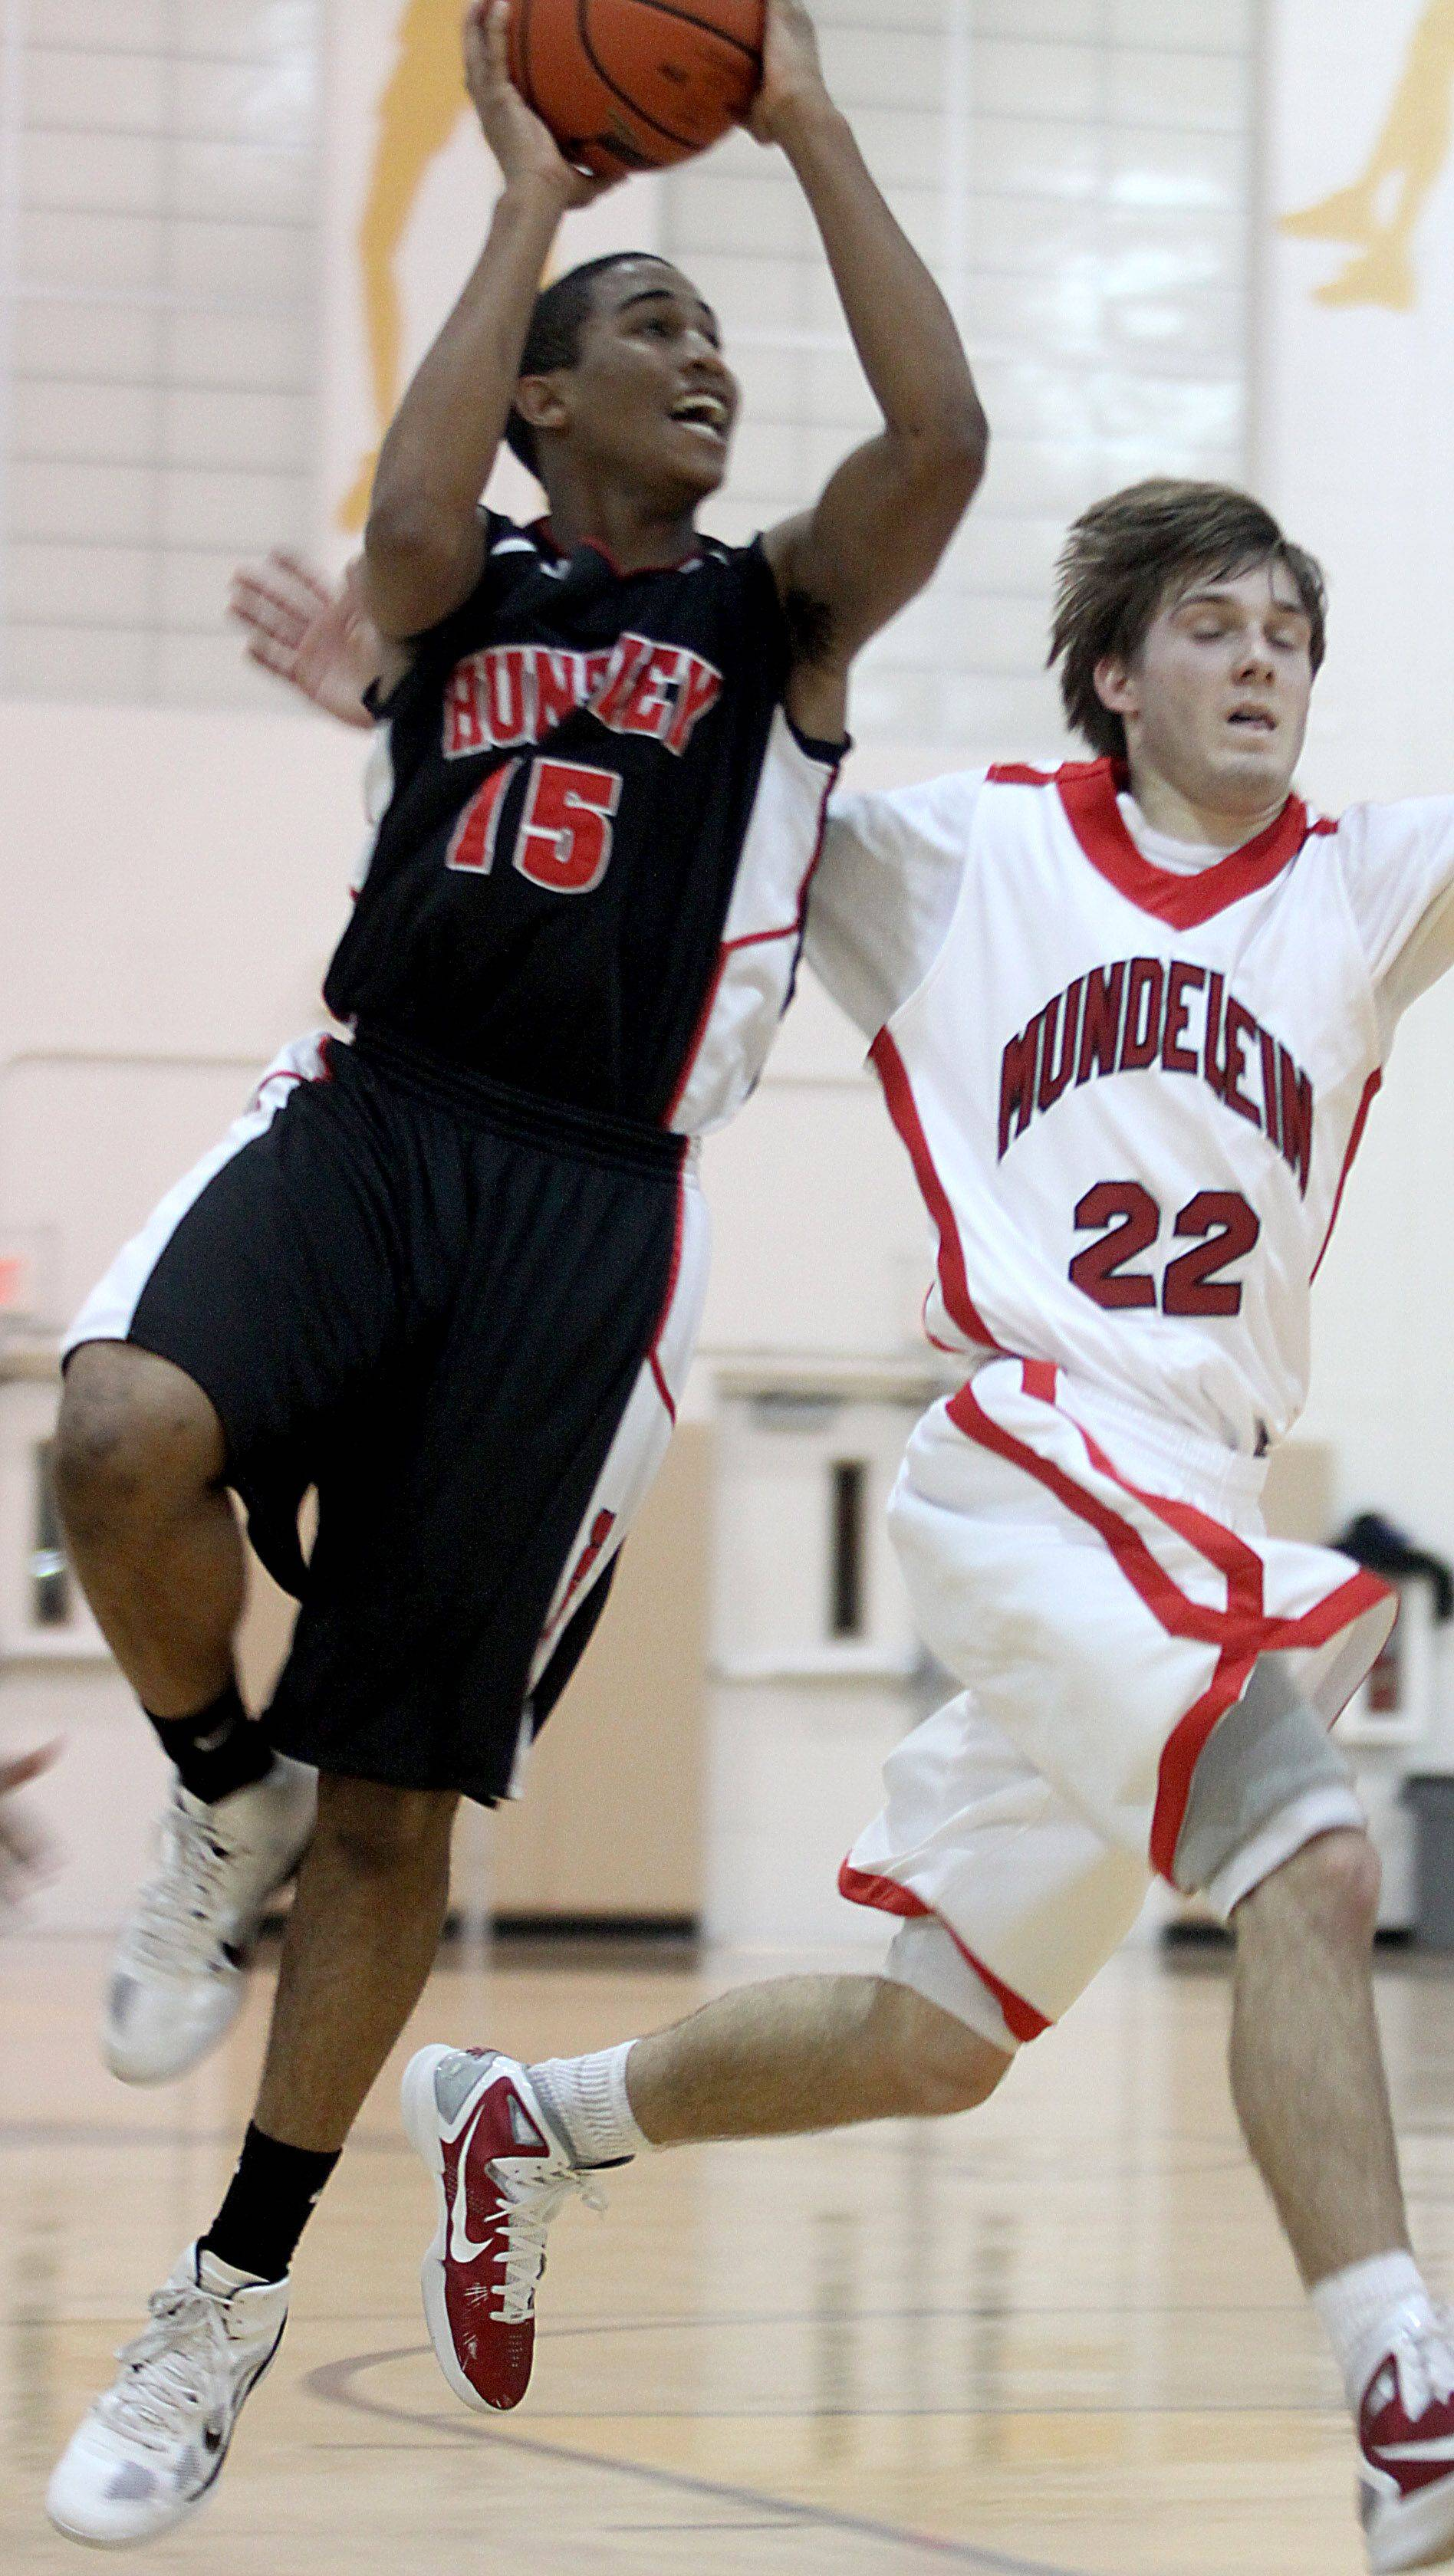 Bryce Only of Huntley, left, shoots past the defense of Robert Knar of Mundelein during the title game of the Jacobs Holiday Classic Boys Basketball Tournament in Algonquin.